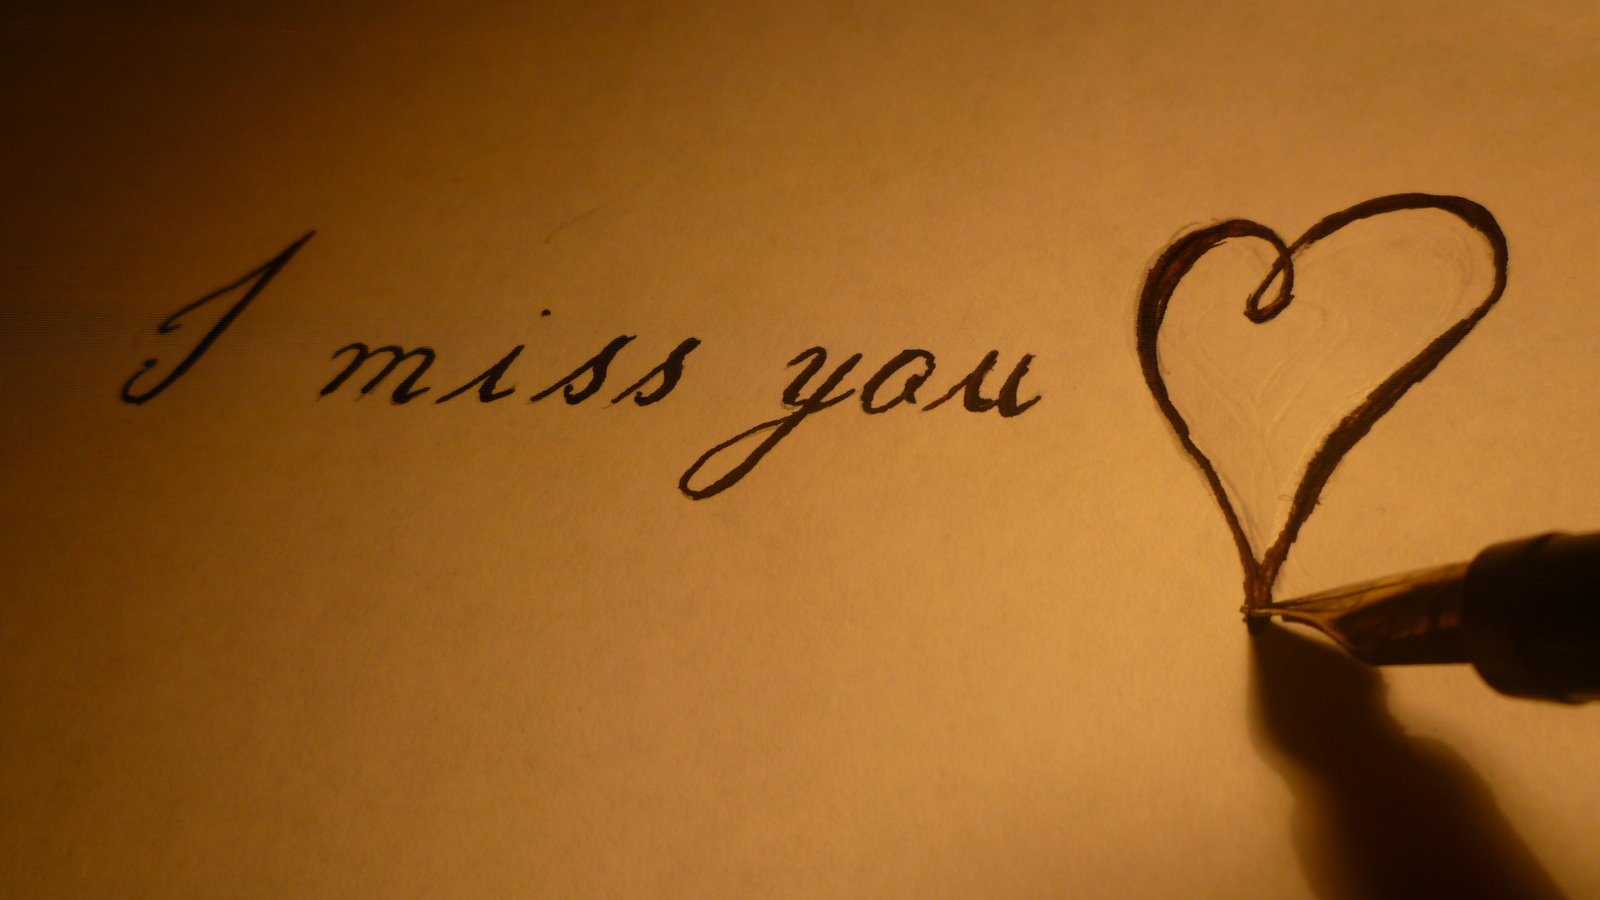 I Miss You Wishes For Love Image